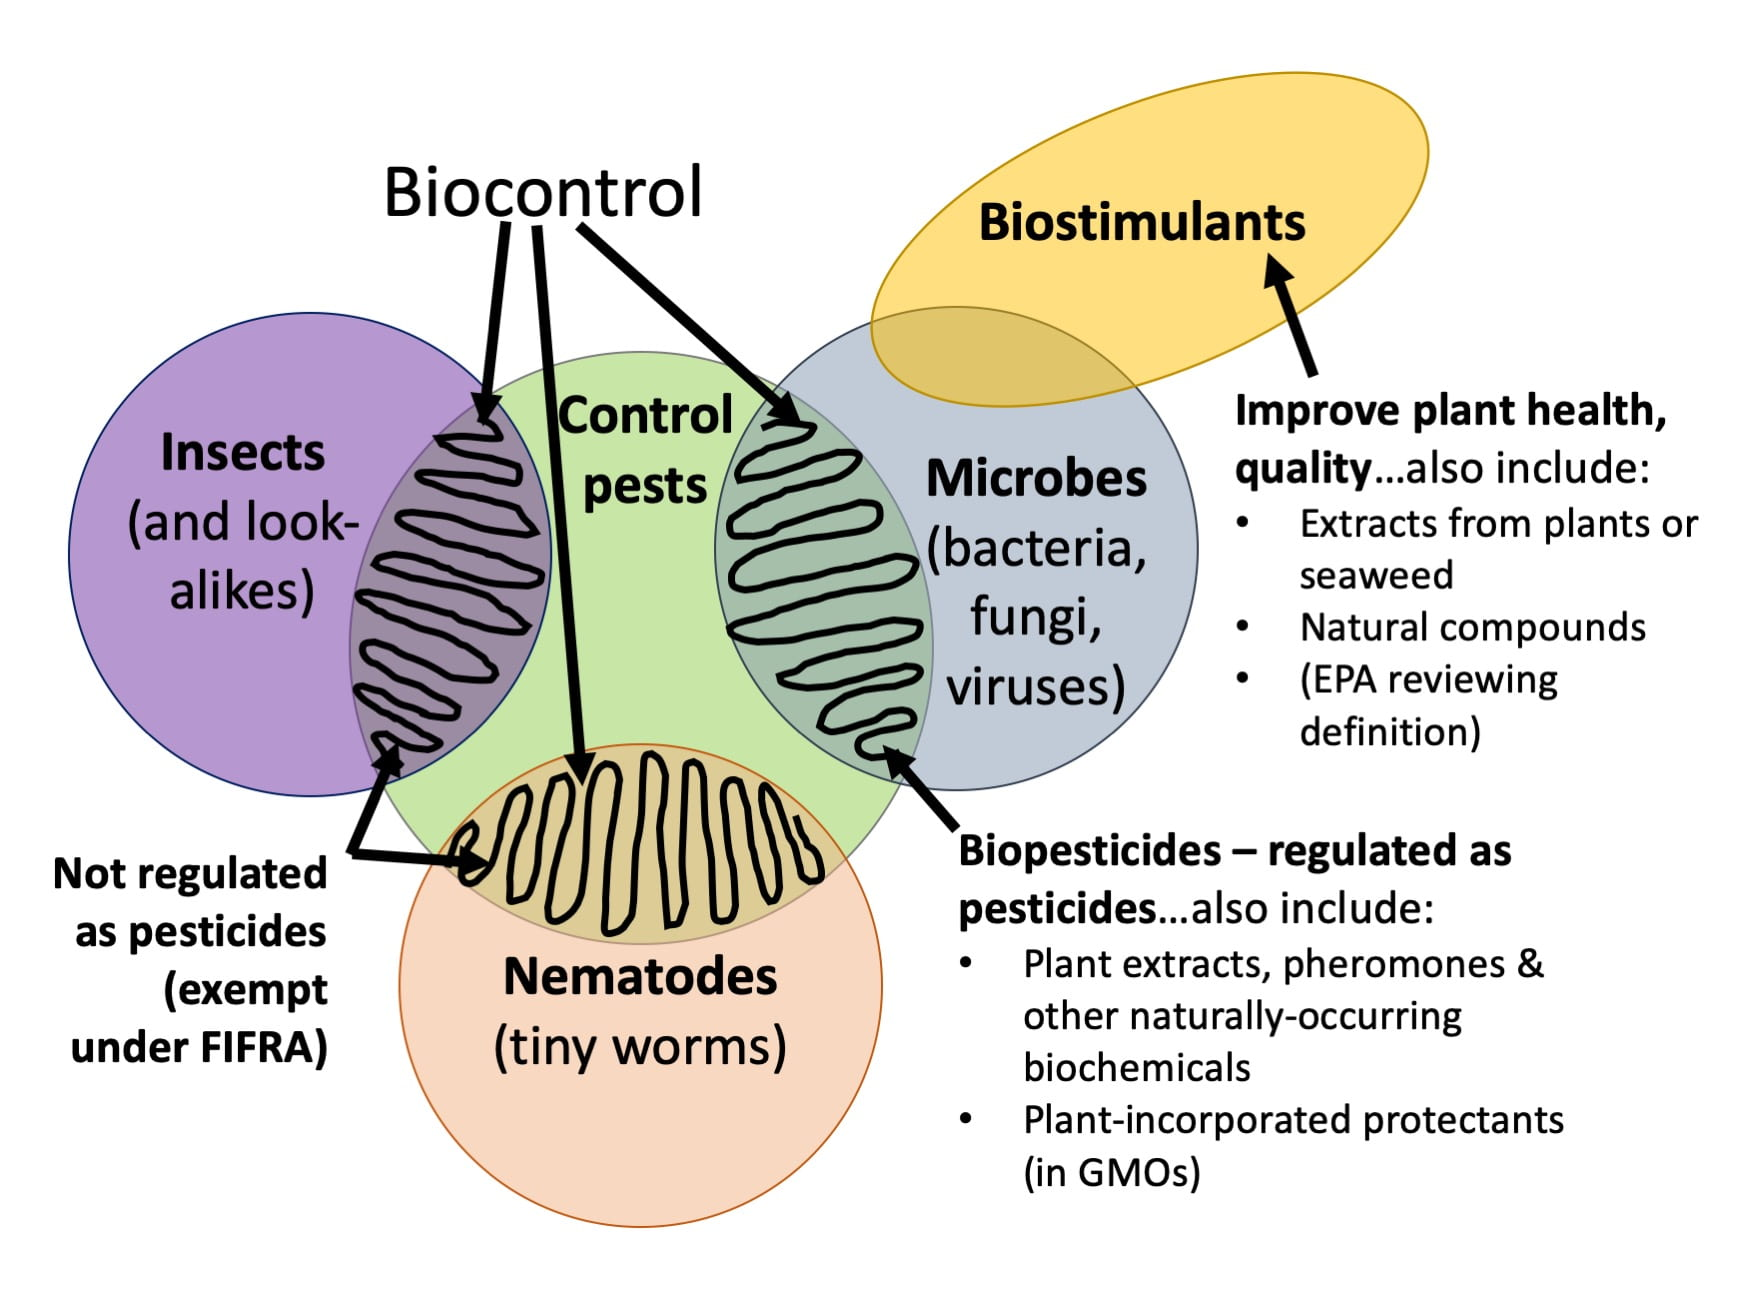 "Venn diagram showing the relationships among biocontrol, biopesticides, and biostimulants. Biocontrol is when an organism controls pests. Often that organism is an insect (and similar, like spiders or predatory mites), a nematode (tiny worm), or a microorganism or microbe (bacteria, fungi, and viruses). Insects and nematodes that control pests are biocontrol, but are not regulated as pesticides. Microbes that control pests are regulated as pesticides. Along with plant extracts, pheromones, naturally-occurring biochemicals, and plant-incorporated protectants (found in GMOs) they are biopesticides. Biostimulants may be microbes, extracts from plants or seaweed, or natural compounds. But their purpose is to improve plant health and/or quality; not to control pests. The EPA is currently reviewing the definition of the term ""biostimulant"" and there may be more regulation on these products in the future."